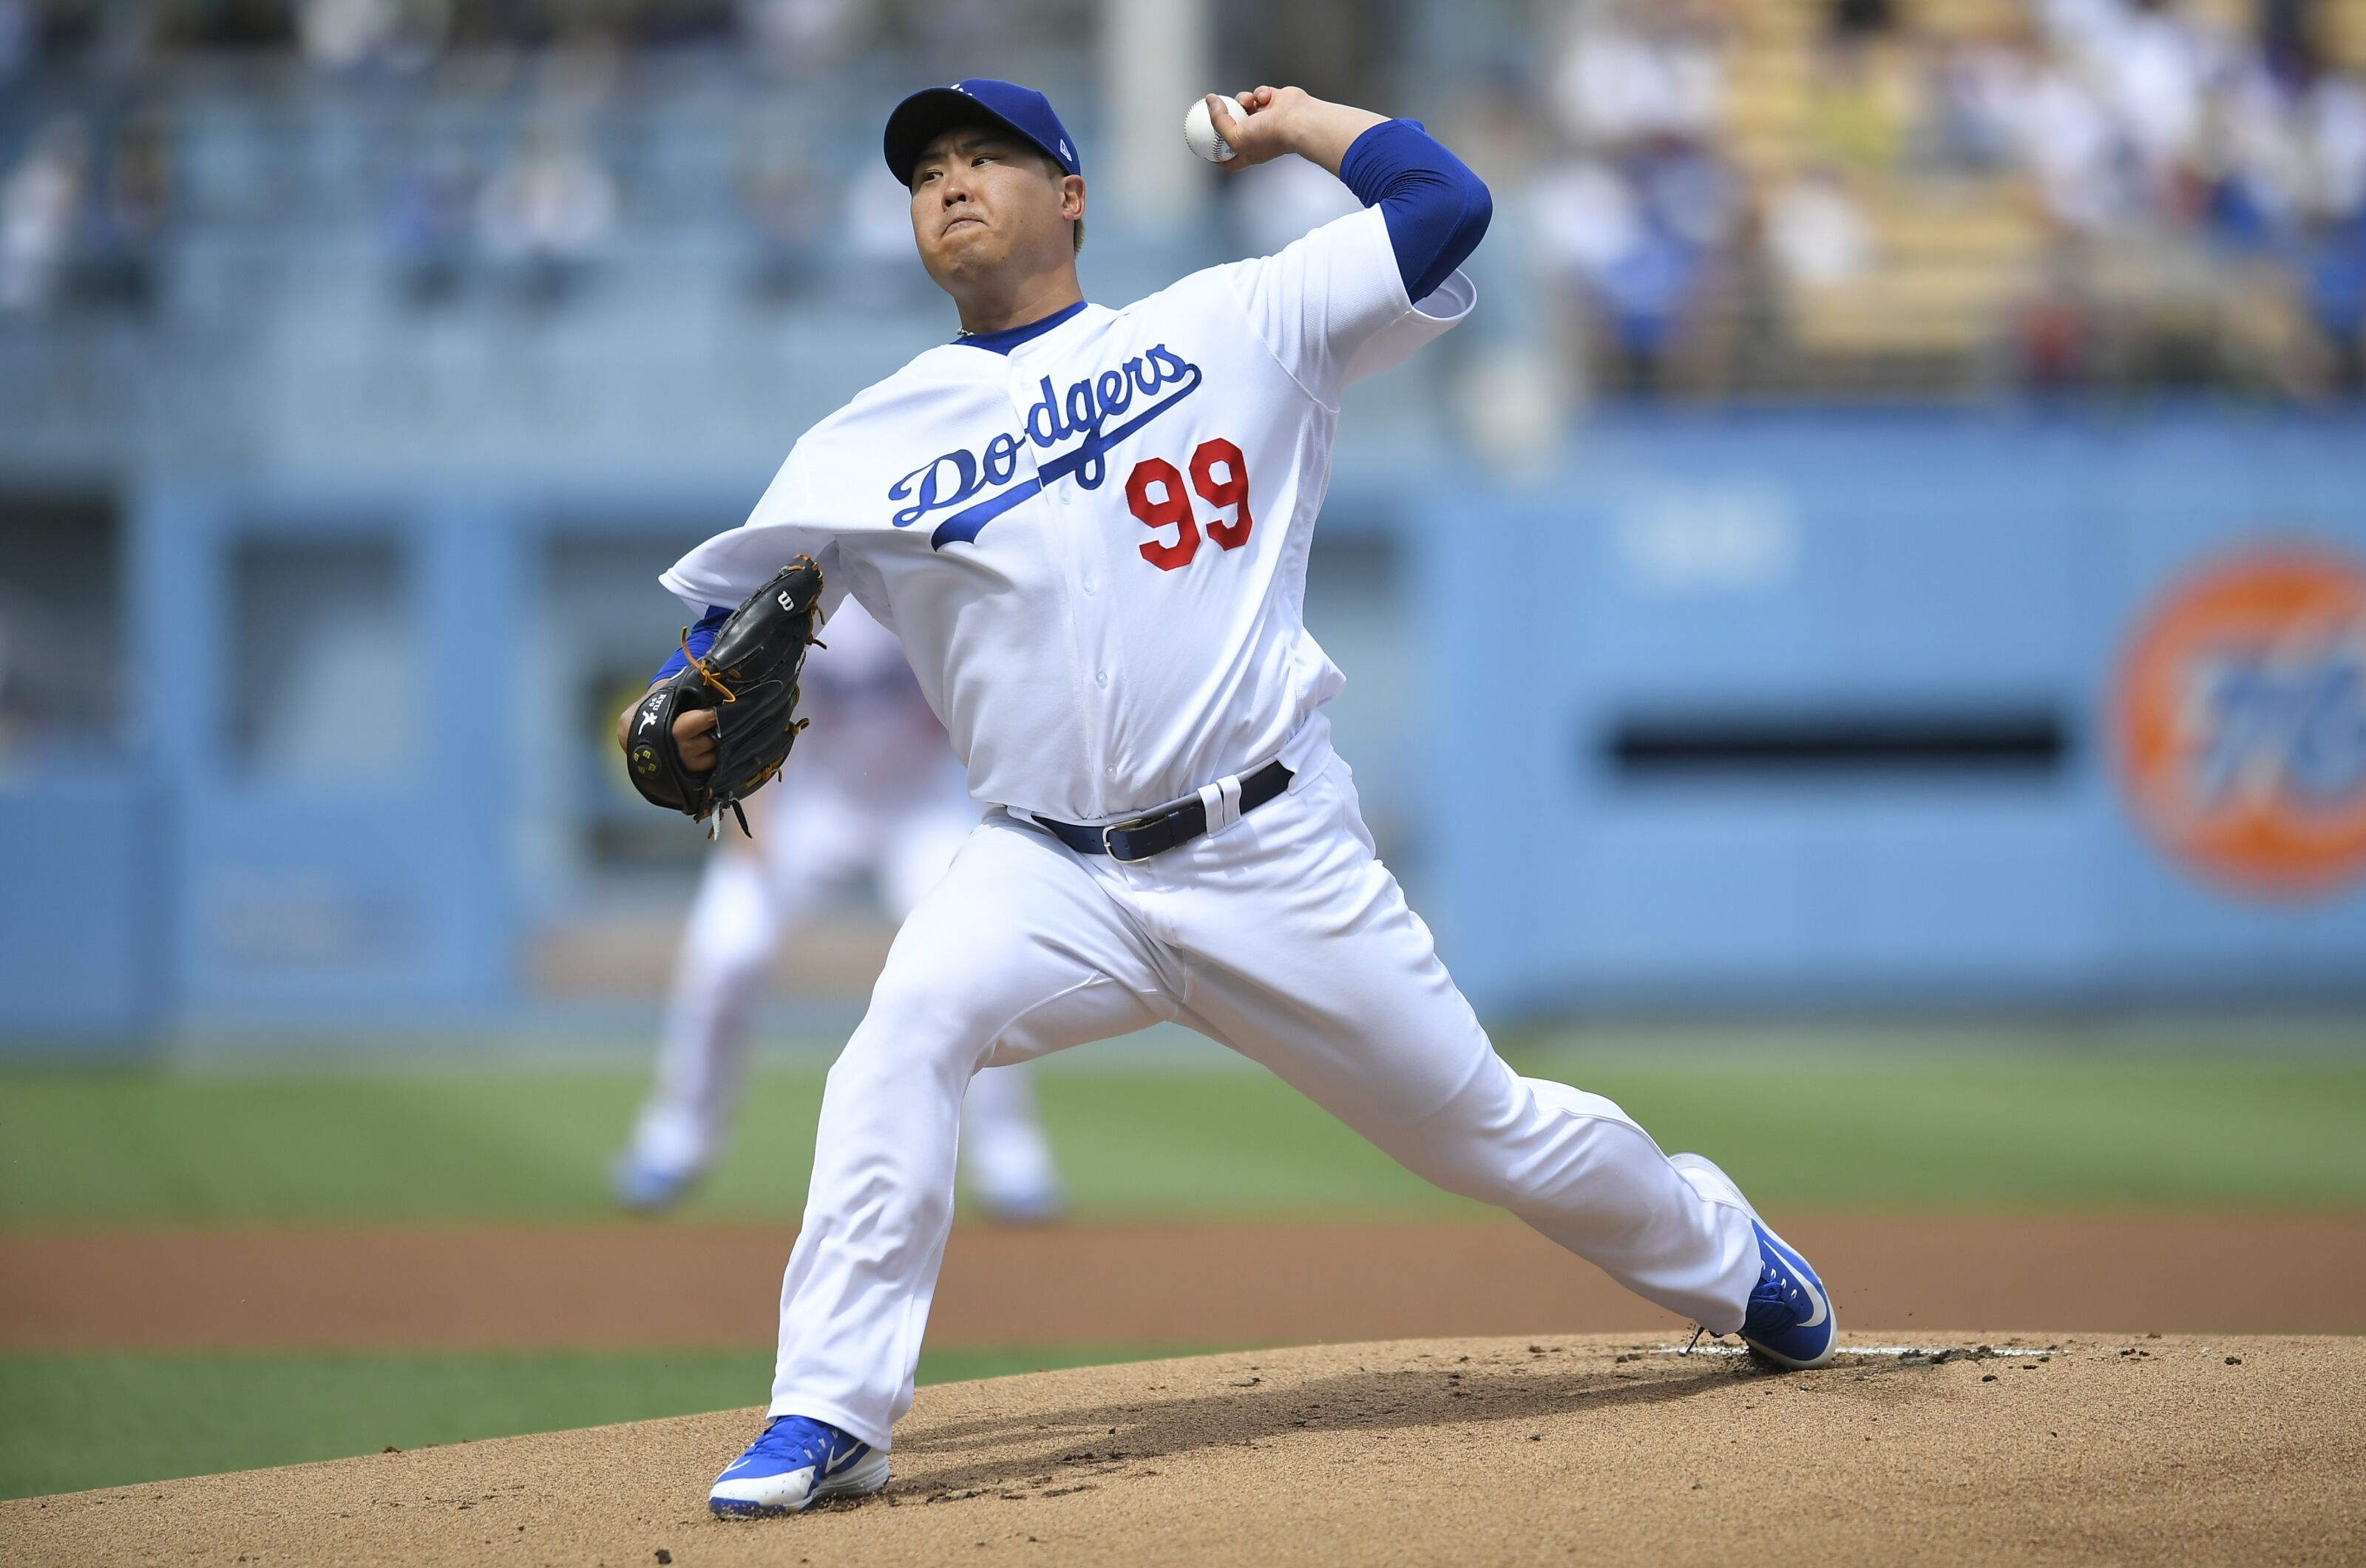 Los Angeles Dodgers: Hyun-Jin Ryu may return after all